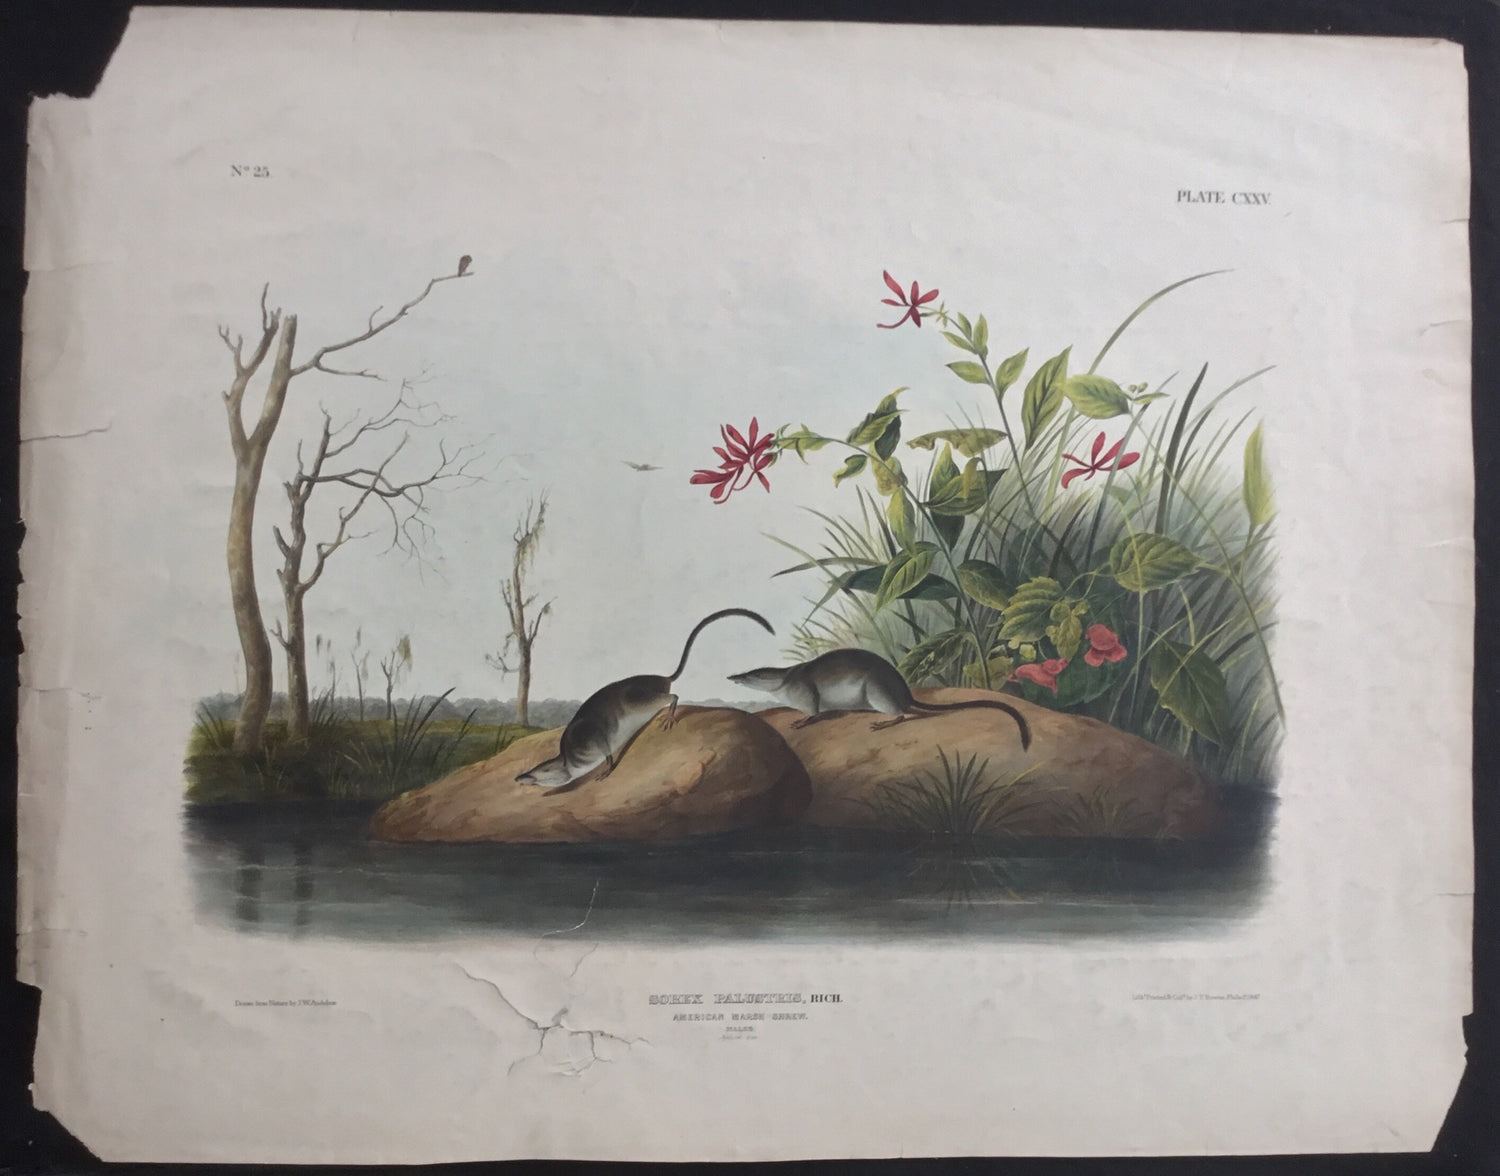 Lord-Hopkins Collection (Bowen pattern print), Audubon Original Imperial plate 125, American Marsh Shrew